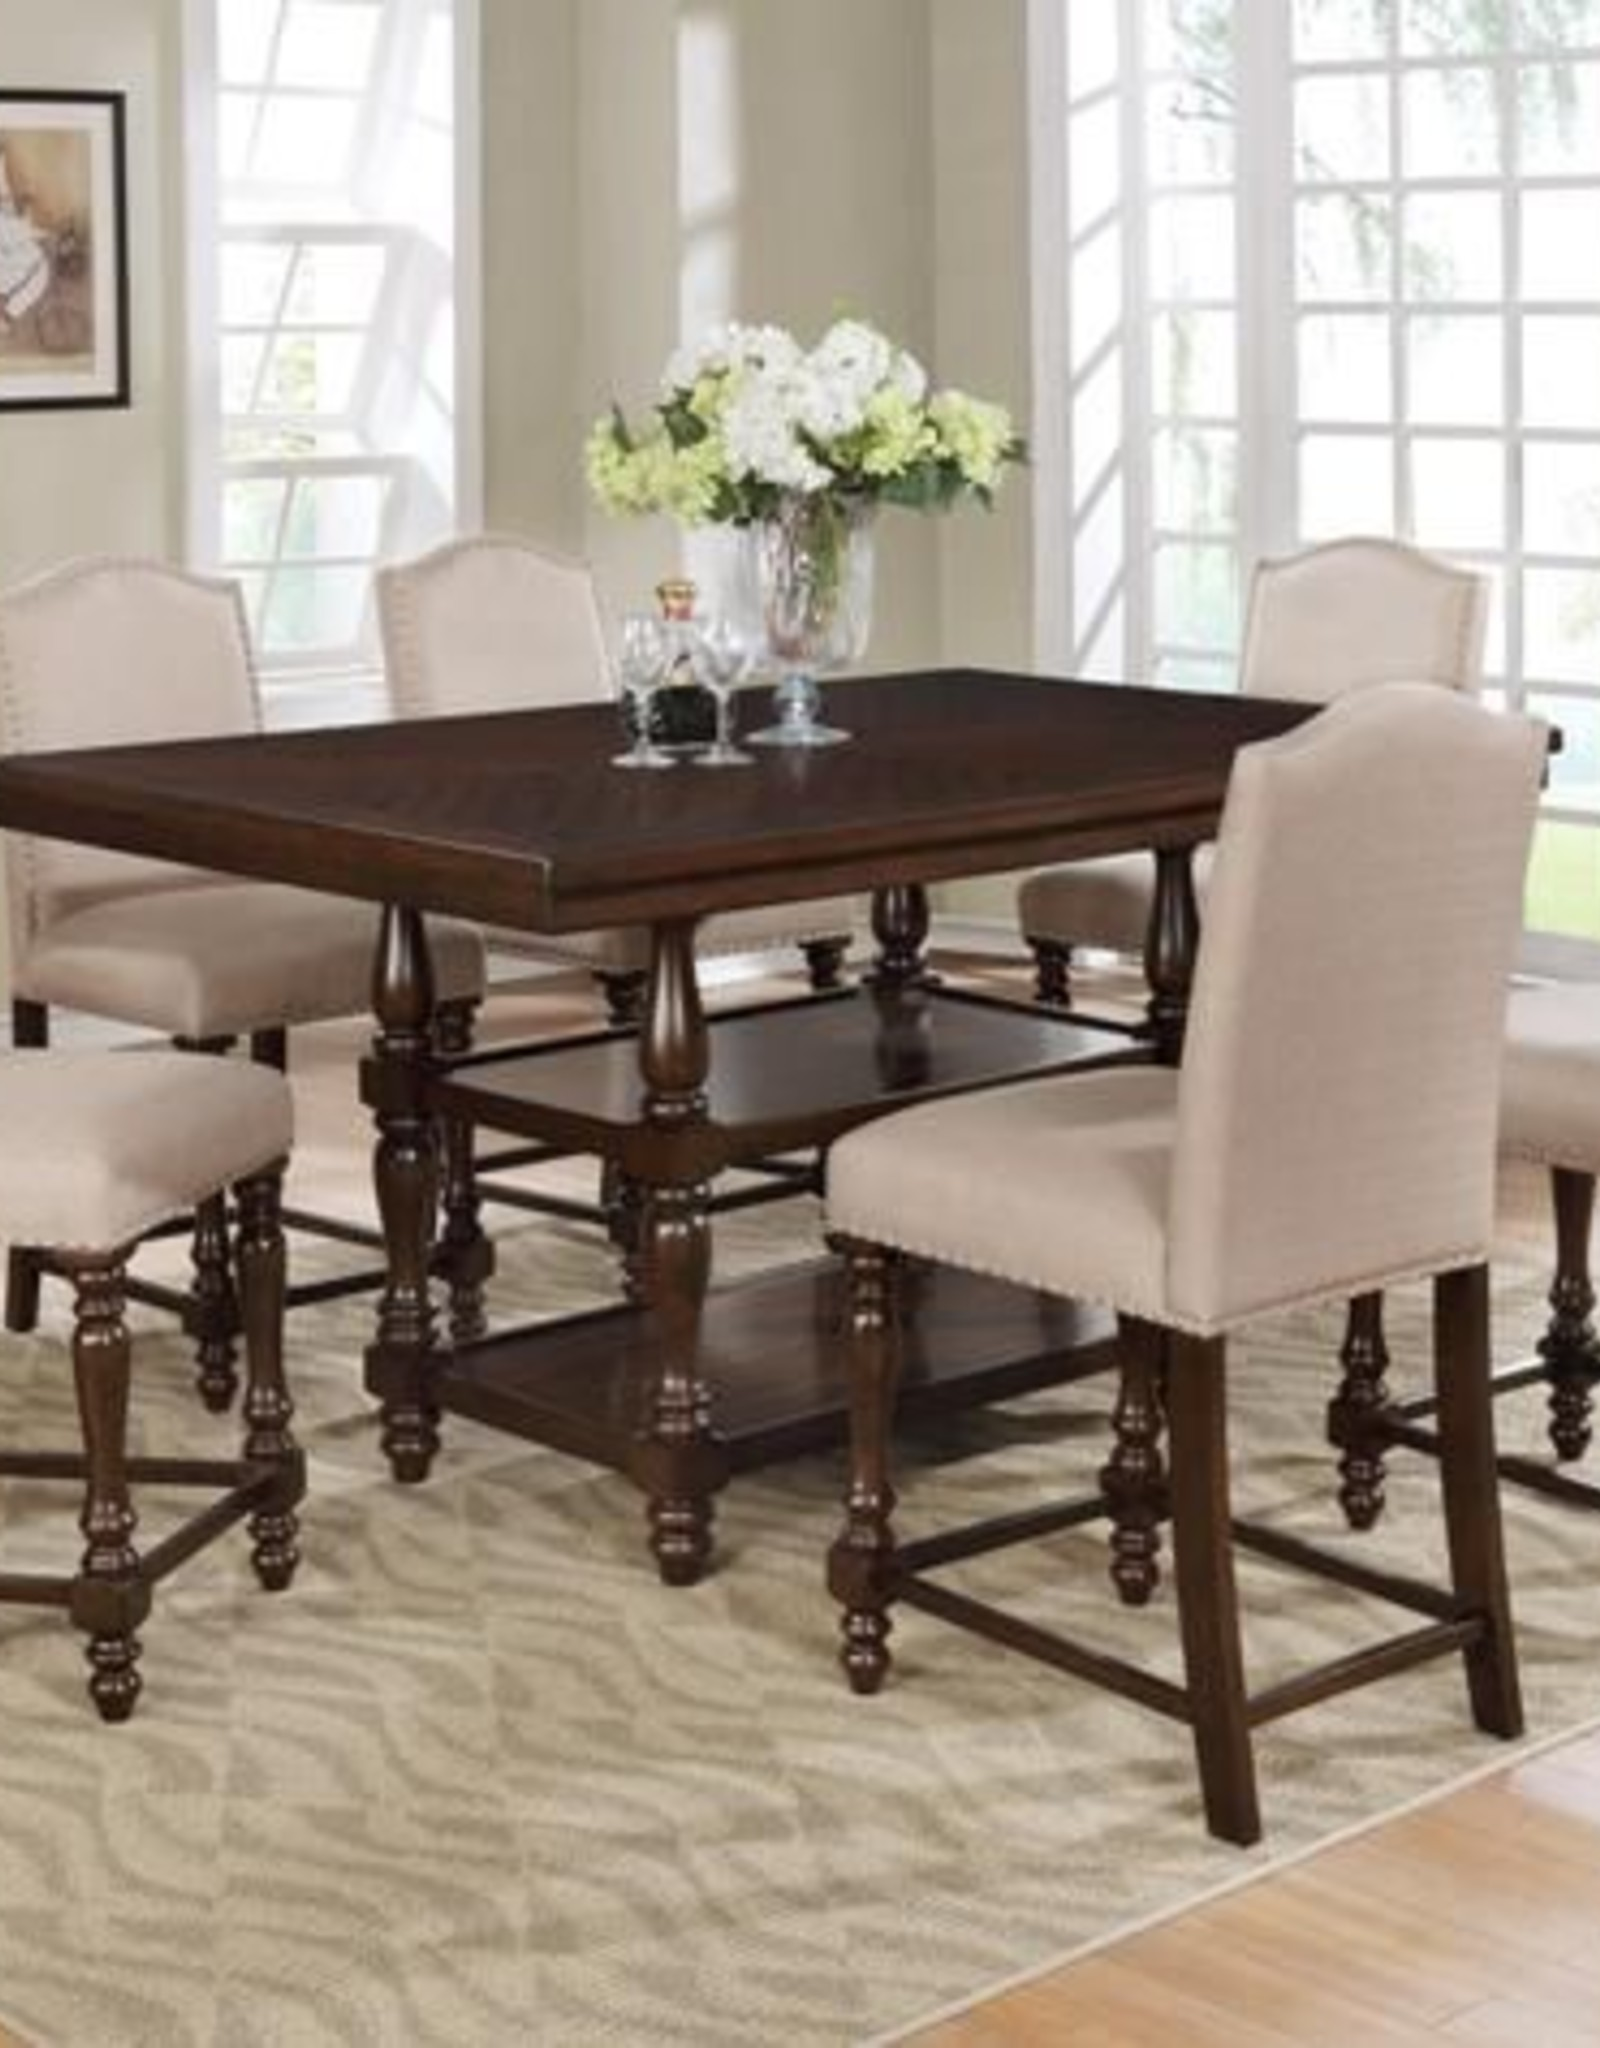 Crownmark Langley Counter Height Table w/ 4 Chairs - Espresso